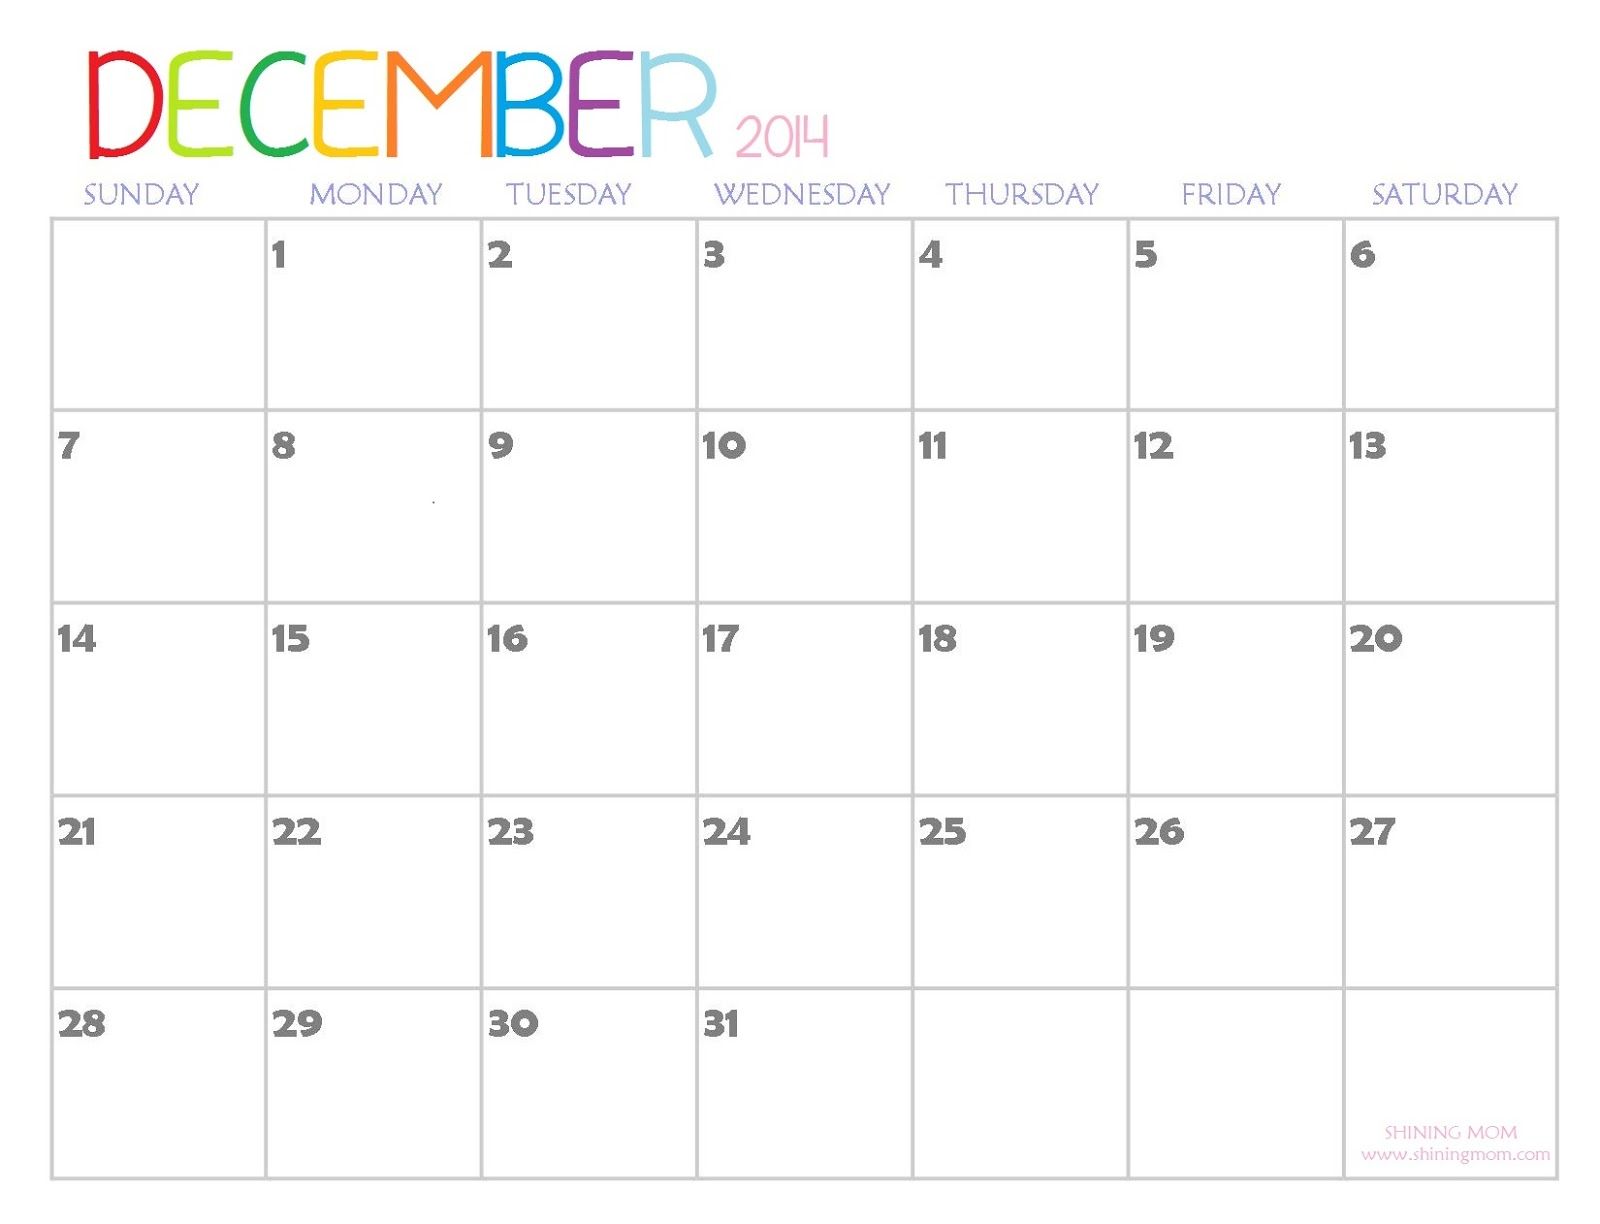 Calendar By Month : Printable calendar by month new template site